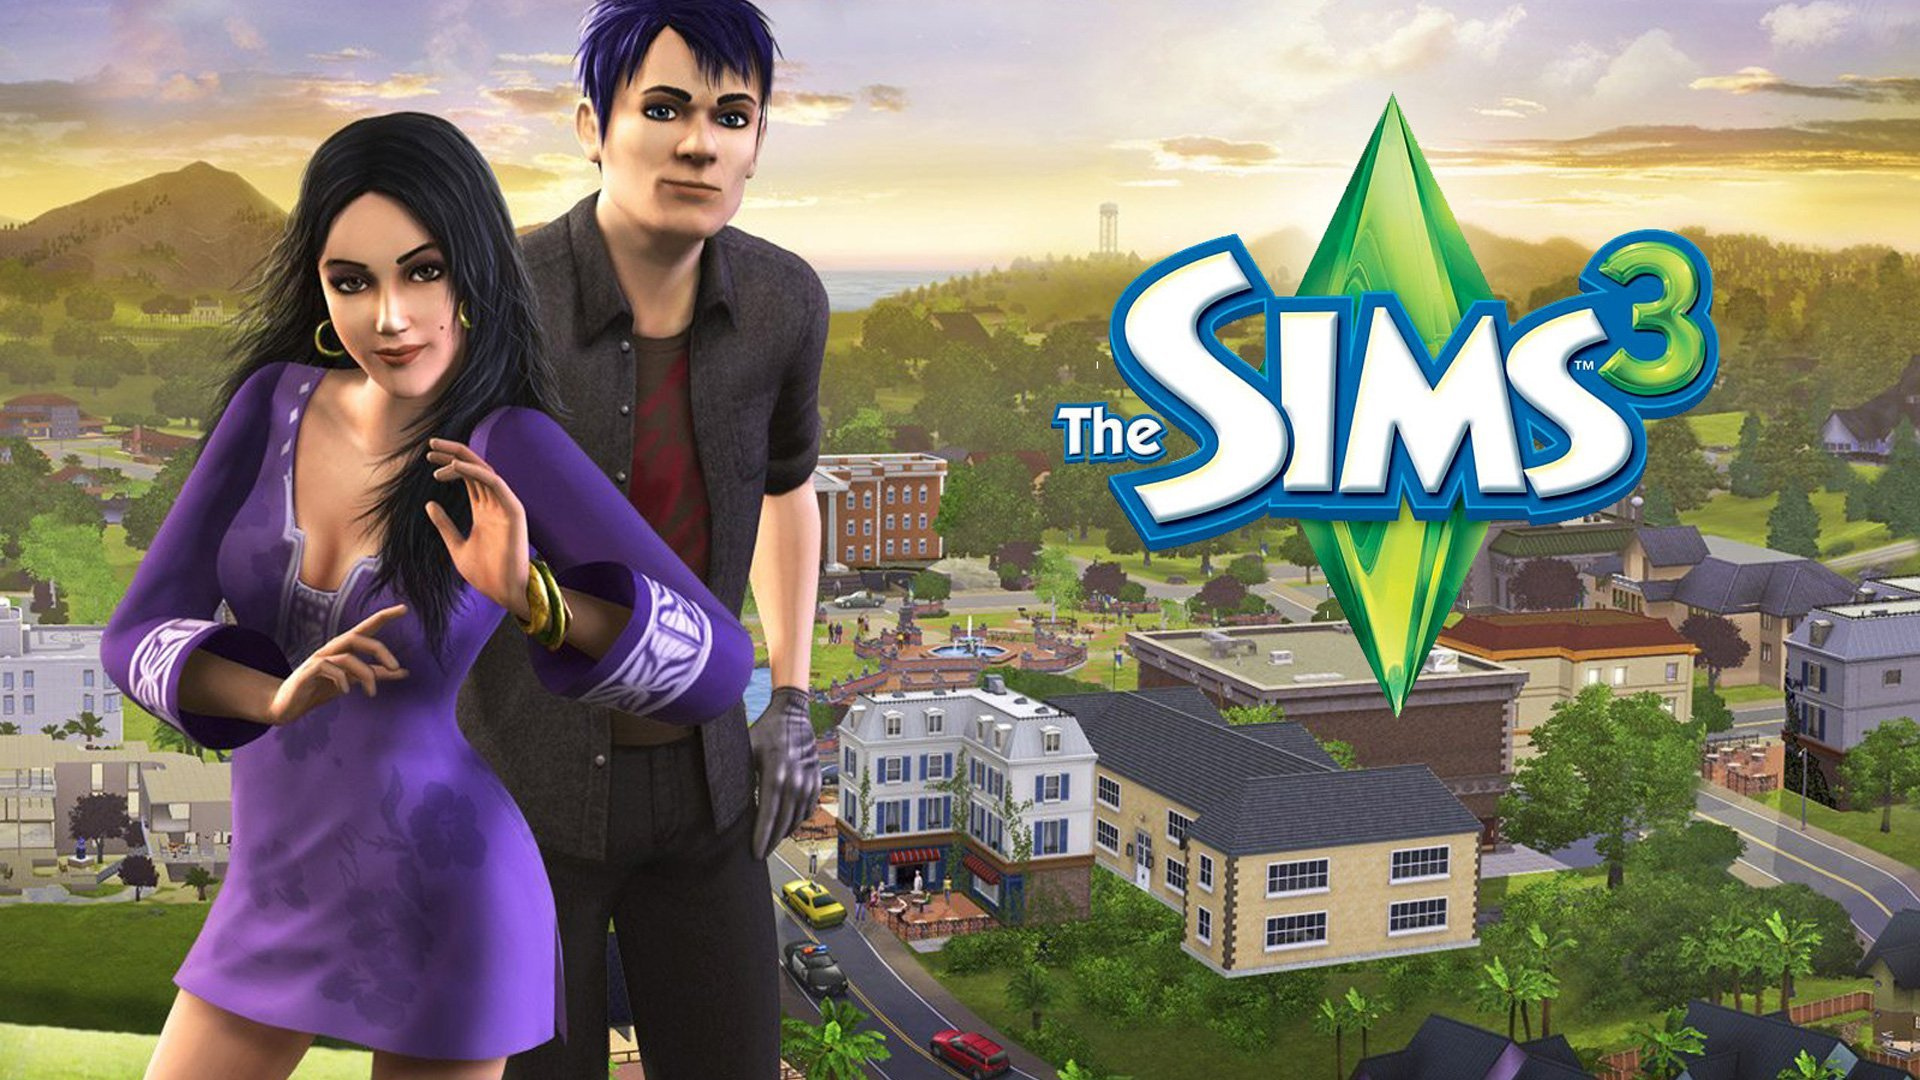 Origin Account with The Sims 3 + The Sims 4 Digital